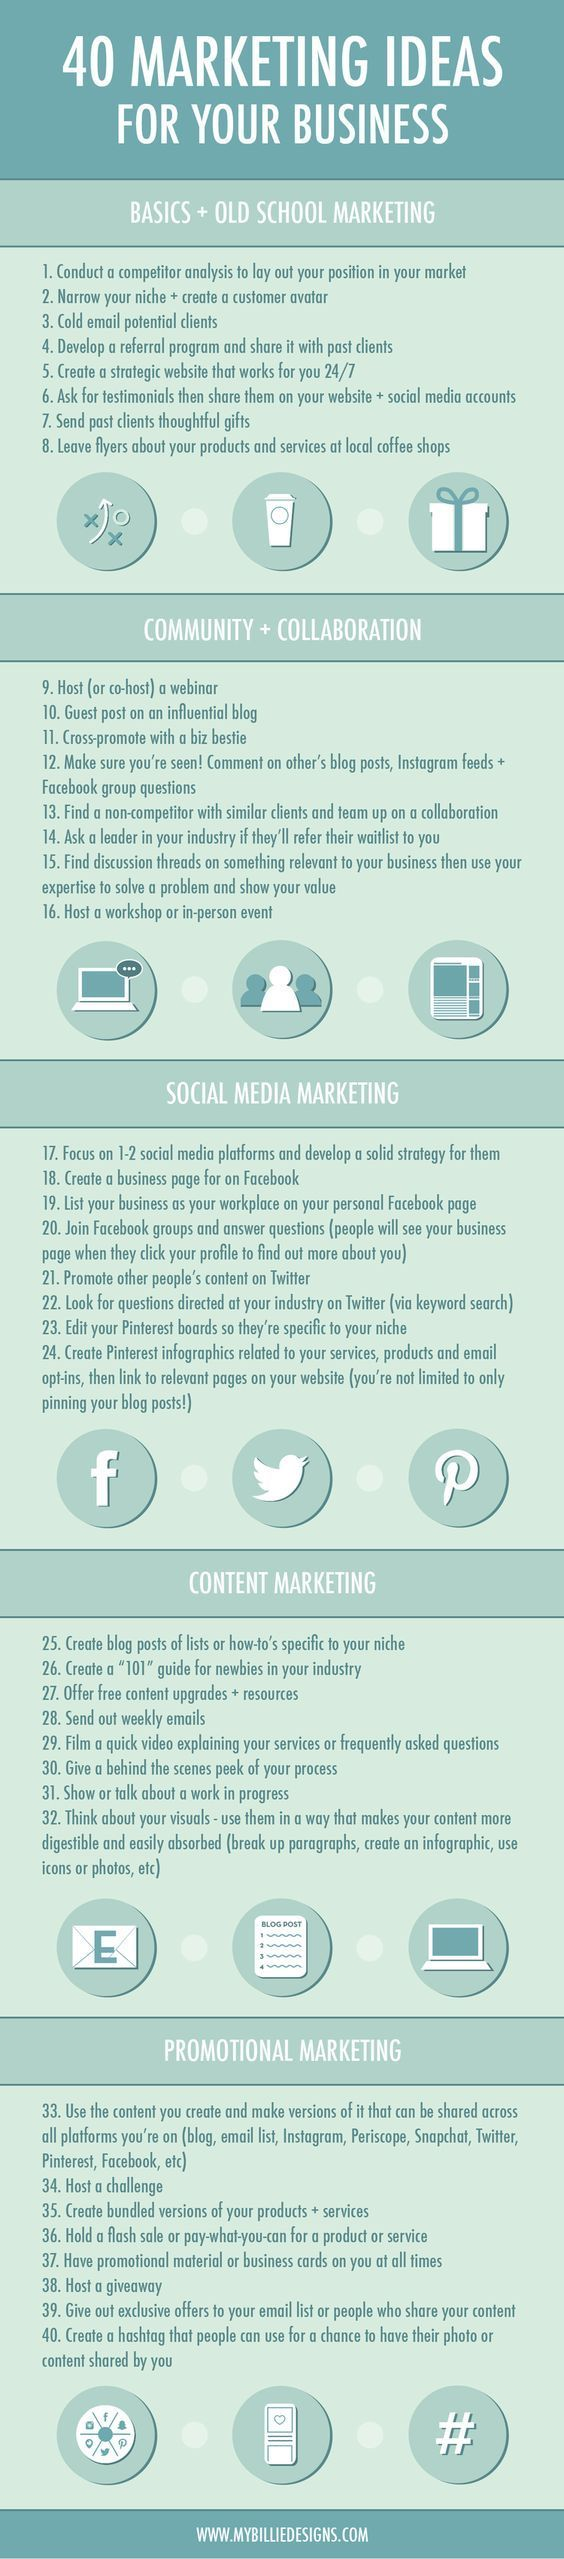 "40 Marketing Ideas For Your Business - <a class=""pintag"" href=""/explore/infographic/"" title=""#infographic explore Pinterest"">#infographic</a>"